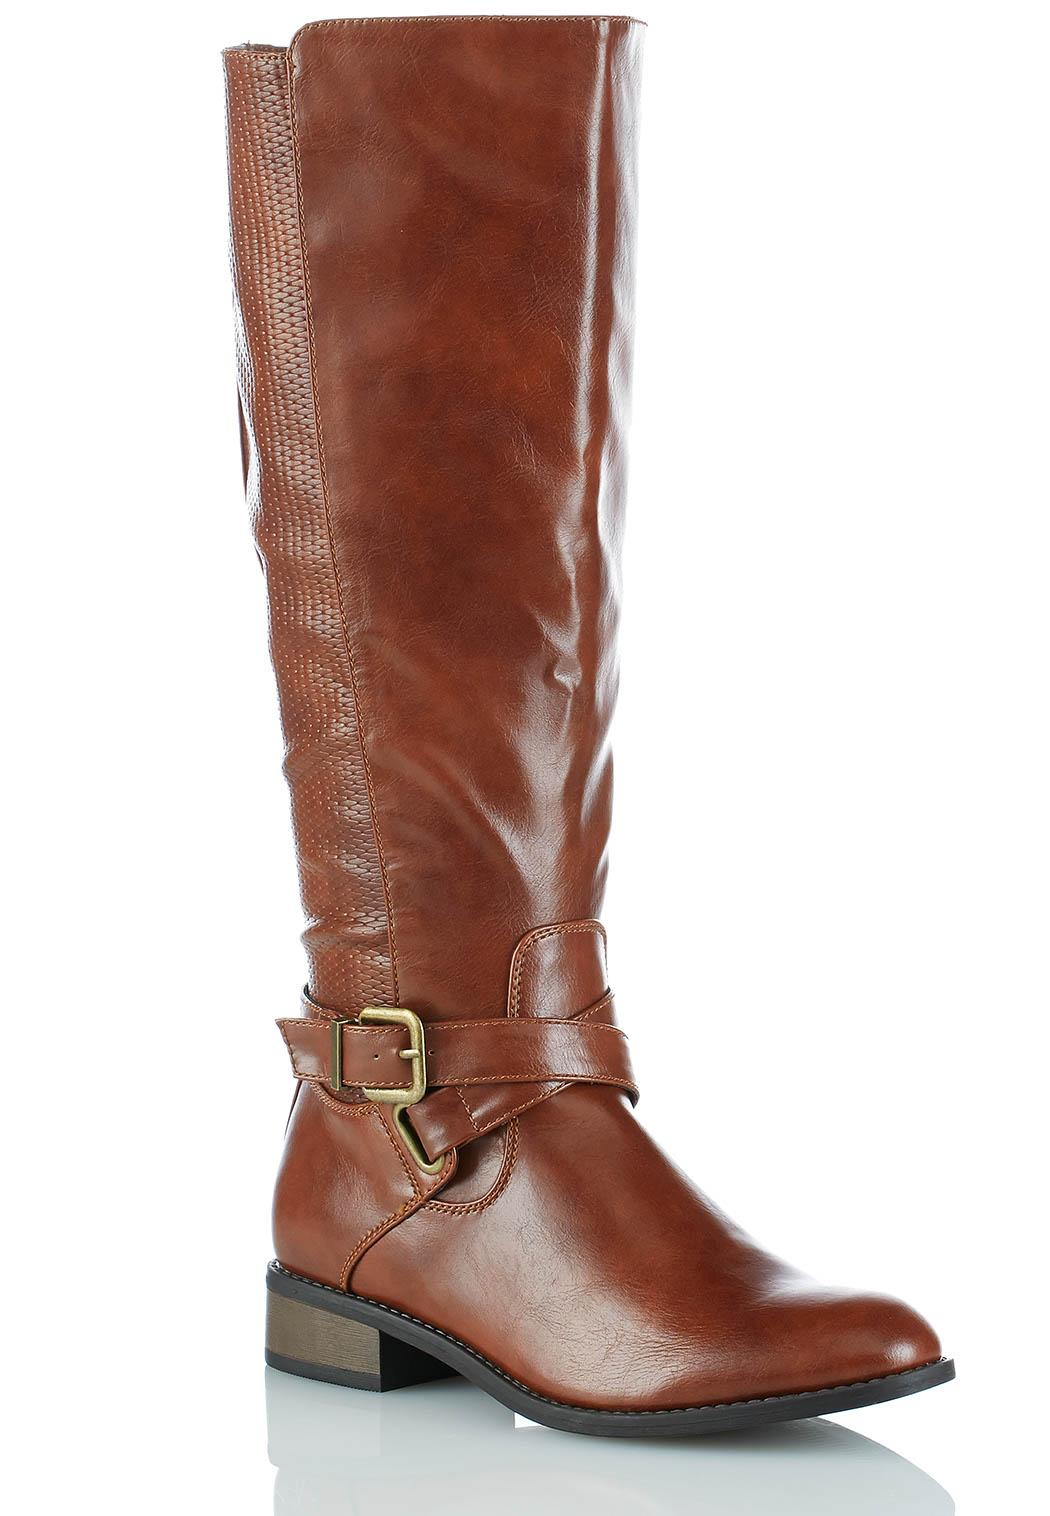 cato boots - 28 images - cato fashions, stretch back boots boots cato fashions, scrunched ...